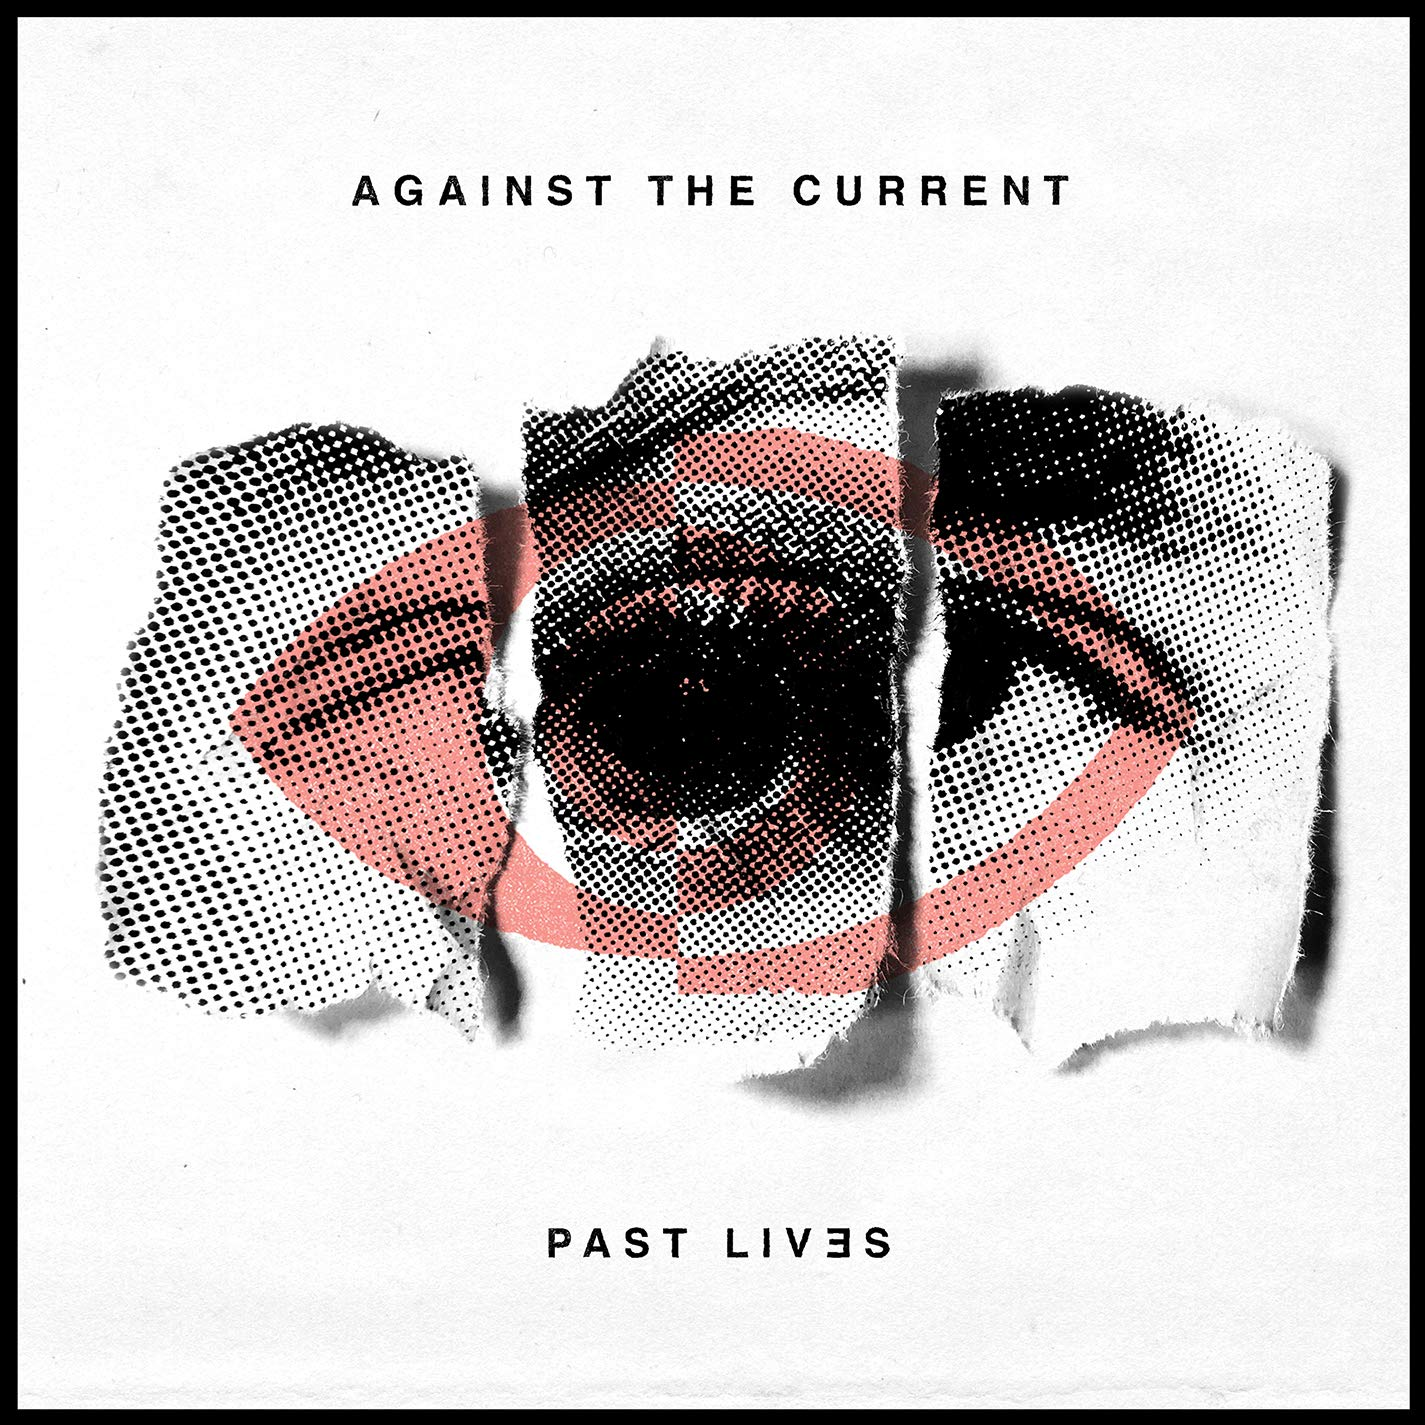 CD : Against the Current - Past Lives (CD)